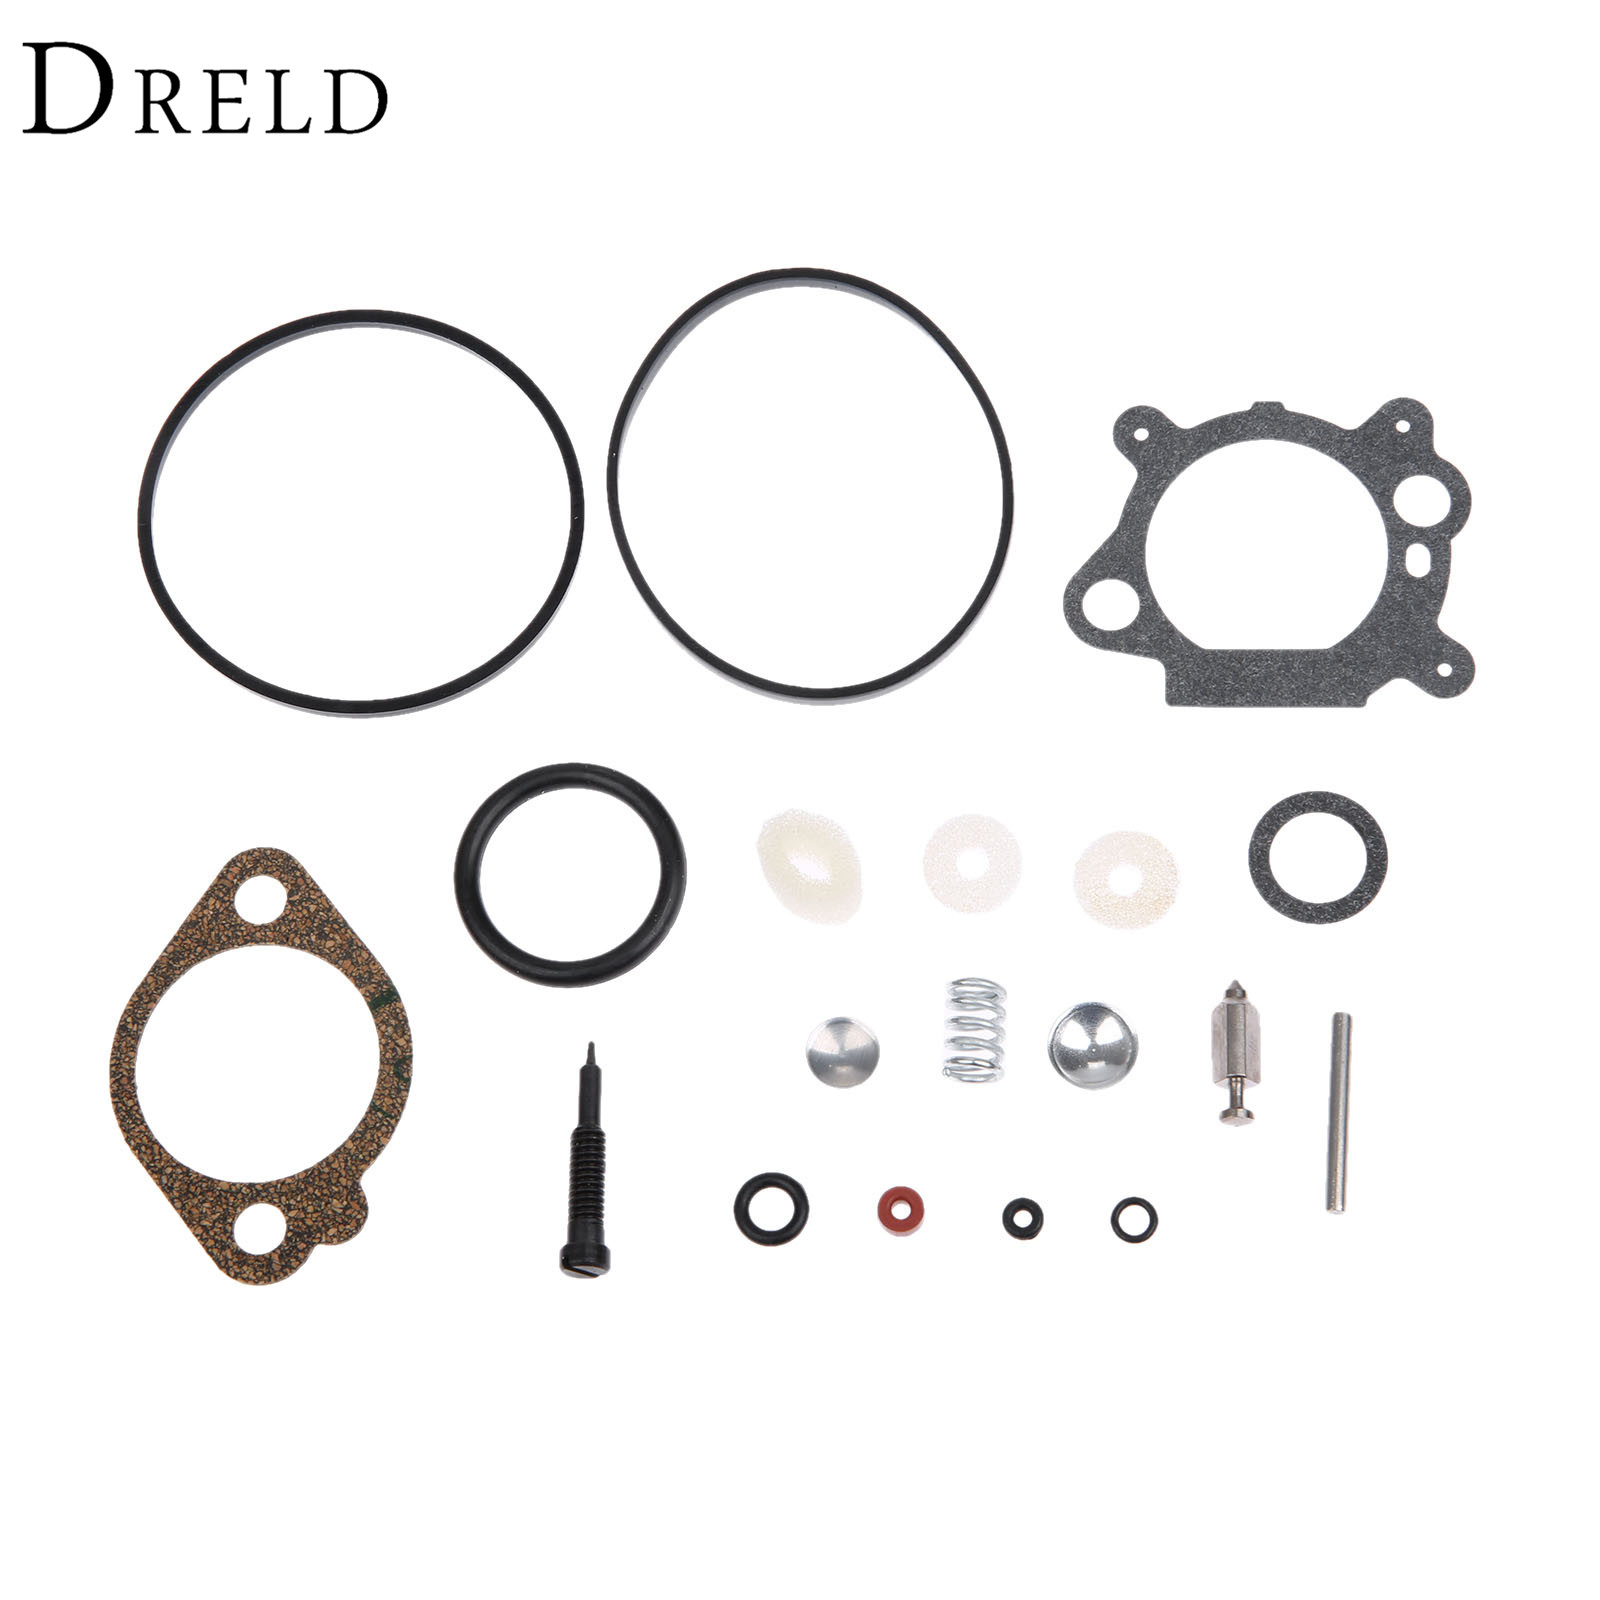 DRELD Carburetor Carb Repair Rebuild Kit for Briggs & Stratton 498260 493762 492495 for 3.5 and 4 HP Max Series Lawn Mower Parts 2016 new carburetor carb rebuild repair kit k10 wyb for srm 260 srm 261 trimmer replacement k20 wyj type